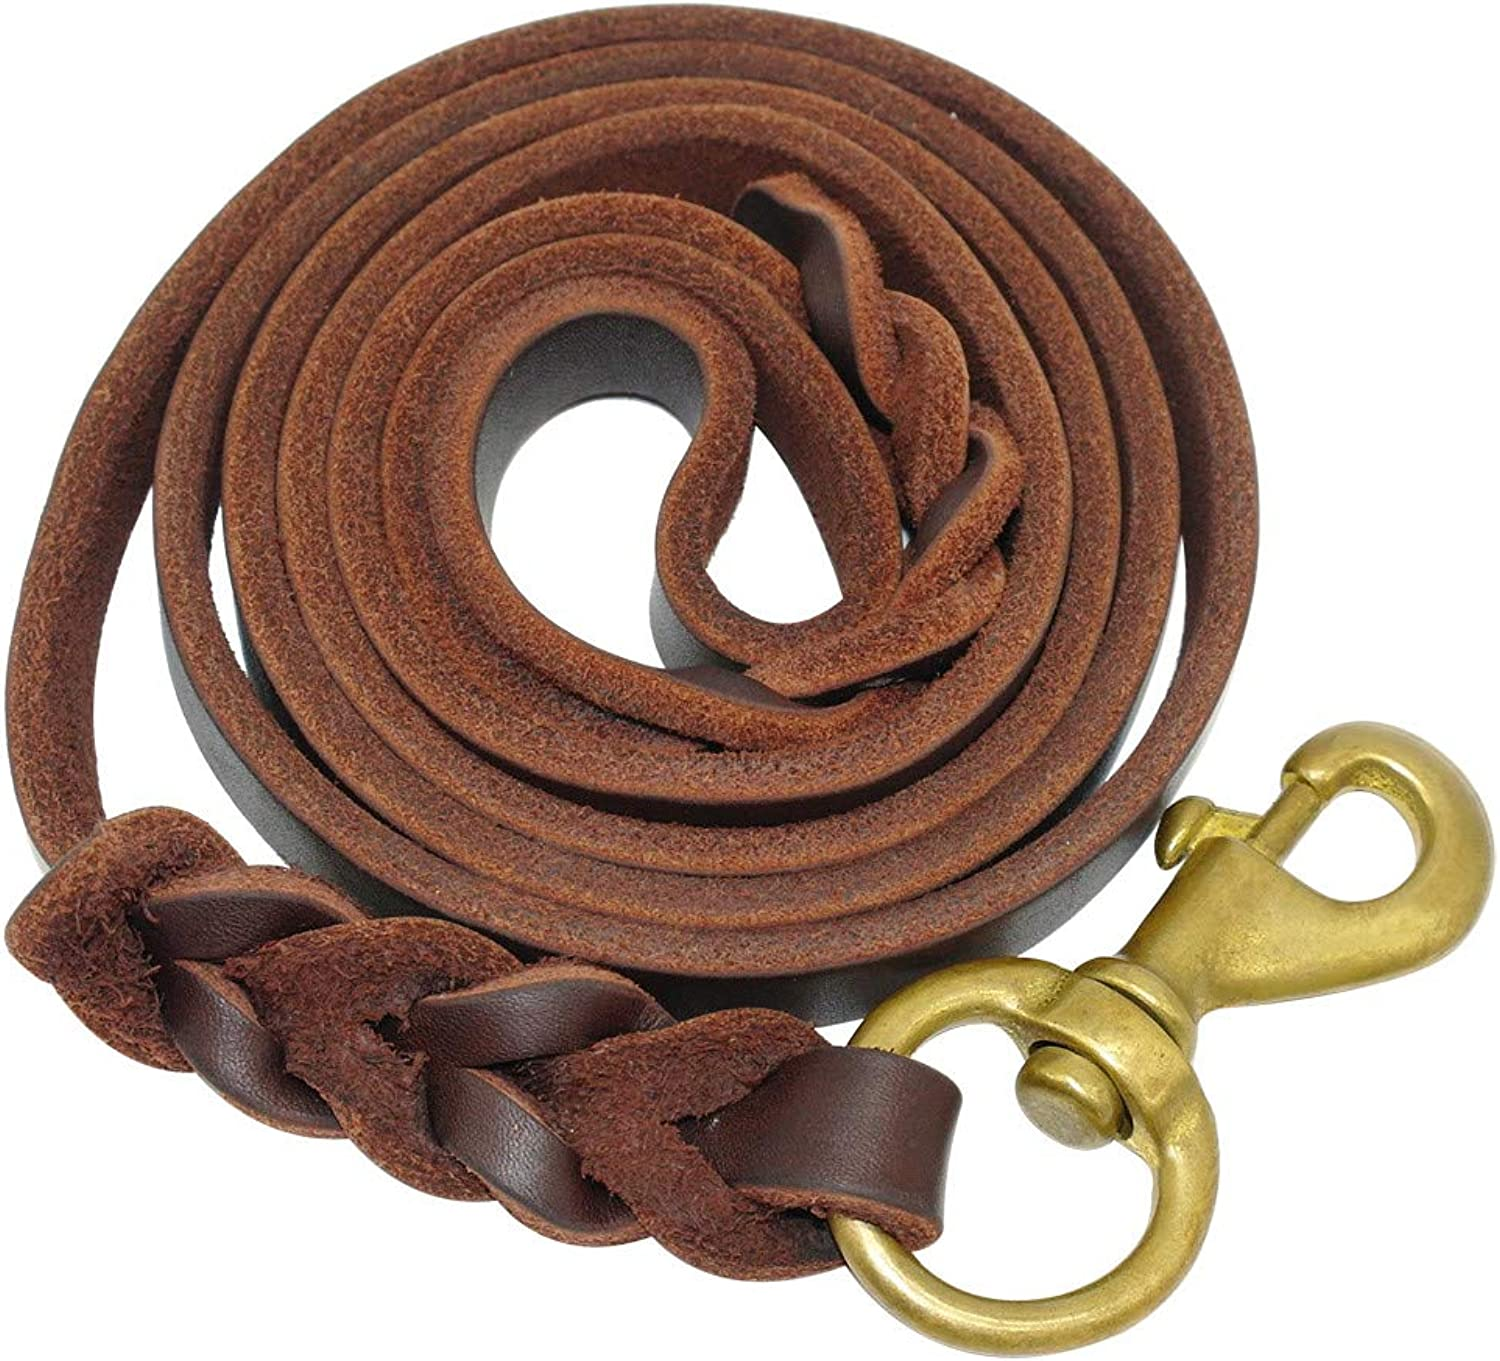 CAOBOO Pet Dog Leash Braided Leather Dog Leash Pet K9 Walking Training Leash Lead for Medium Large Dogs German Shepherd Gift Dog Training Clicker Brown 12mm x 265cm